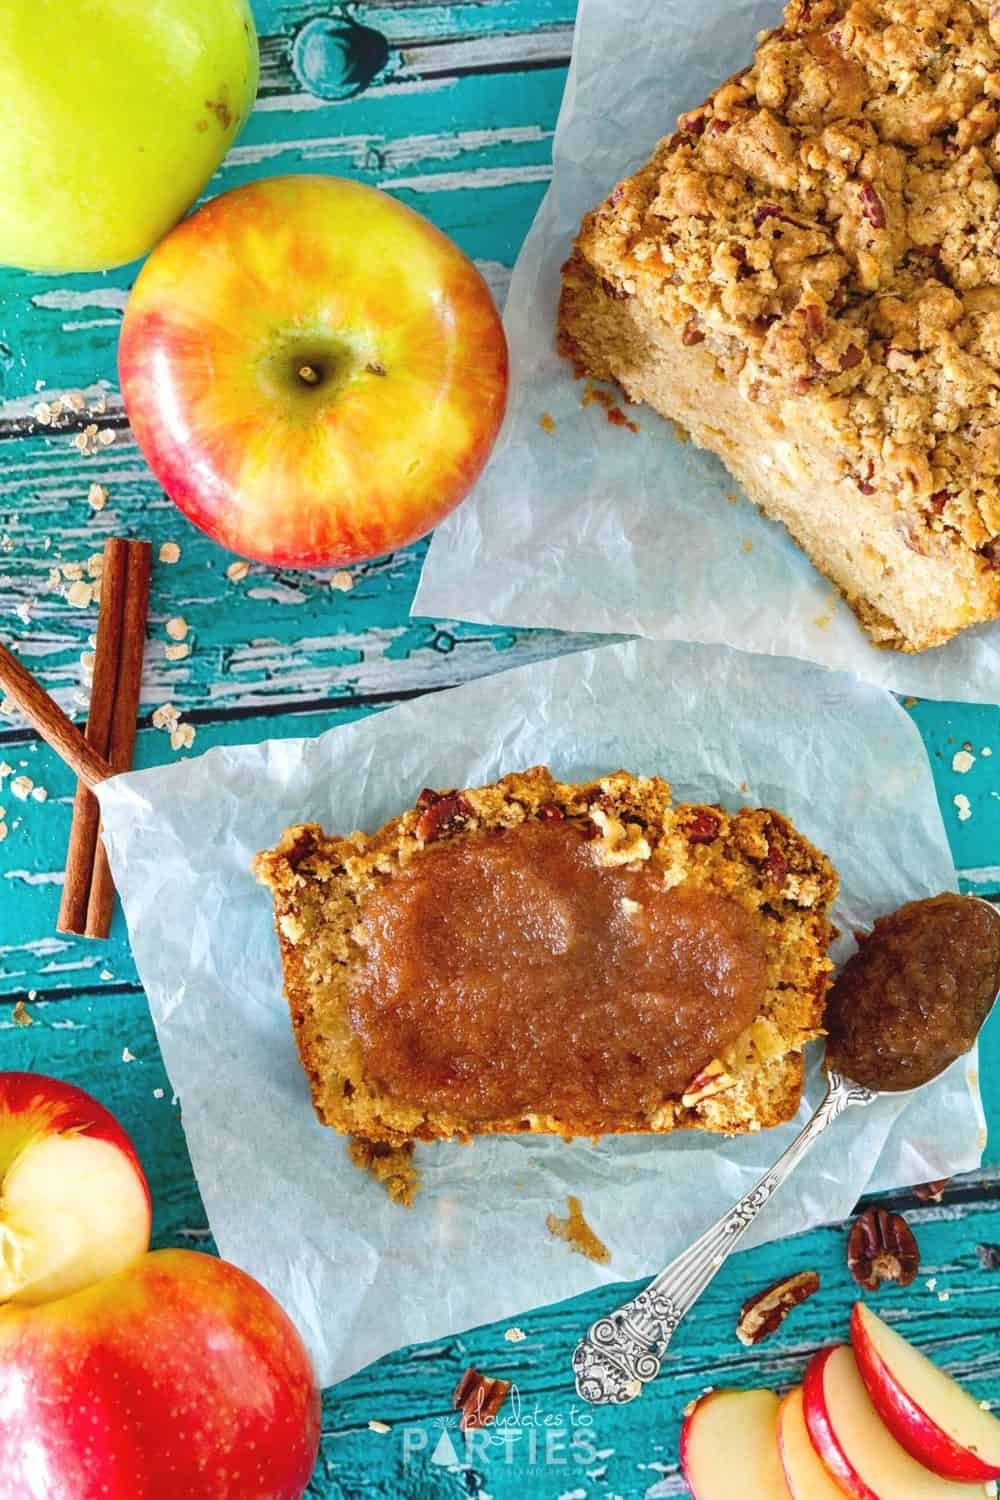 A slice of quick bread with a smear of apple butter on a piece of parchment paper.